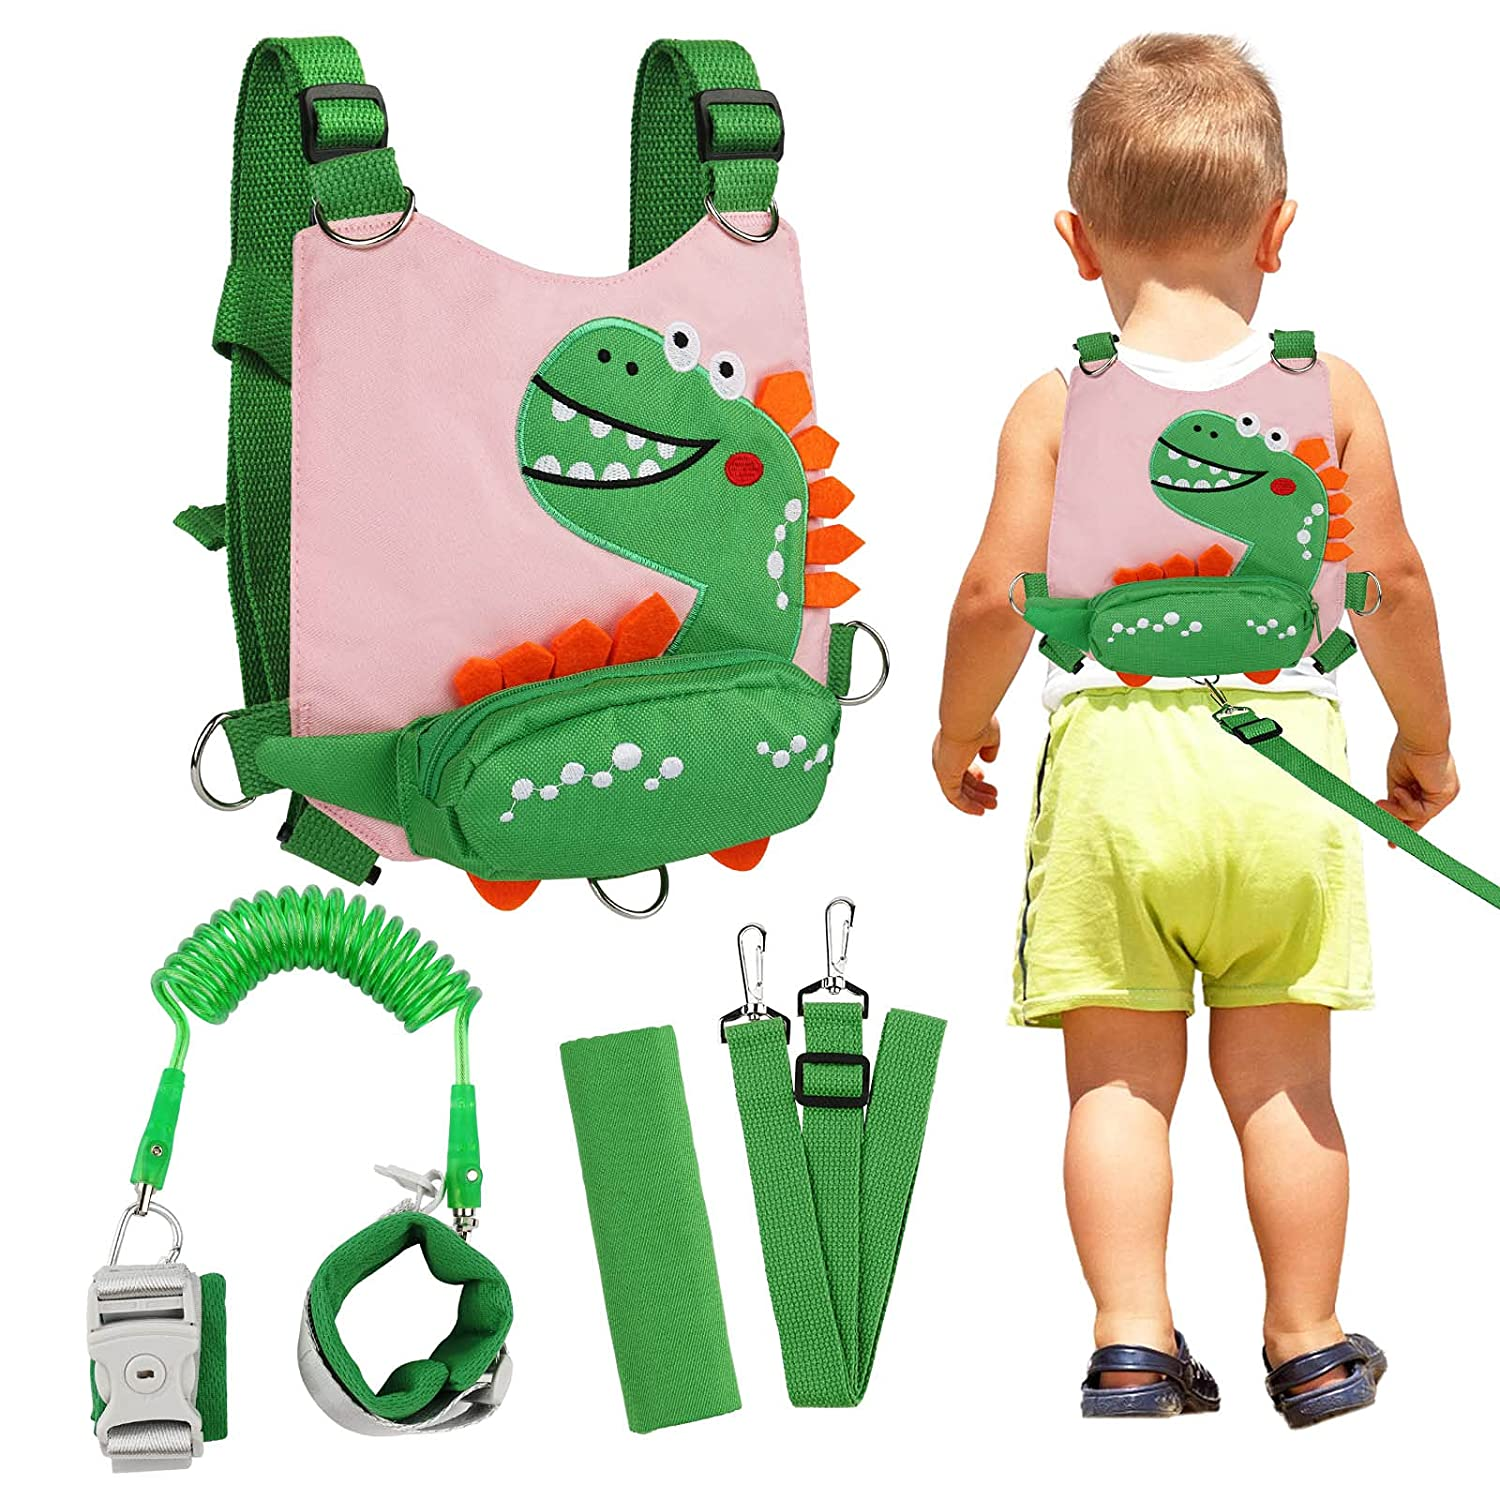 Toddler Backpack Leash Dinosaur 4-in-1 Anti Lost Wrist Link with Lock Harness Leashes for Kids, Zhiwei Child Safety Leash Wristband Walking Assistant Strap Belt for Baby Boys Girls (Pink)